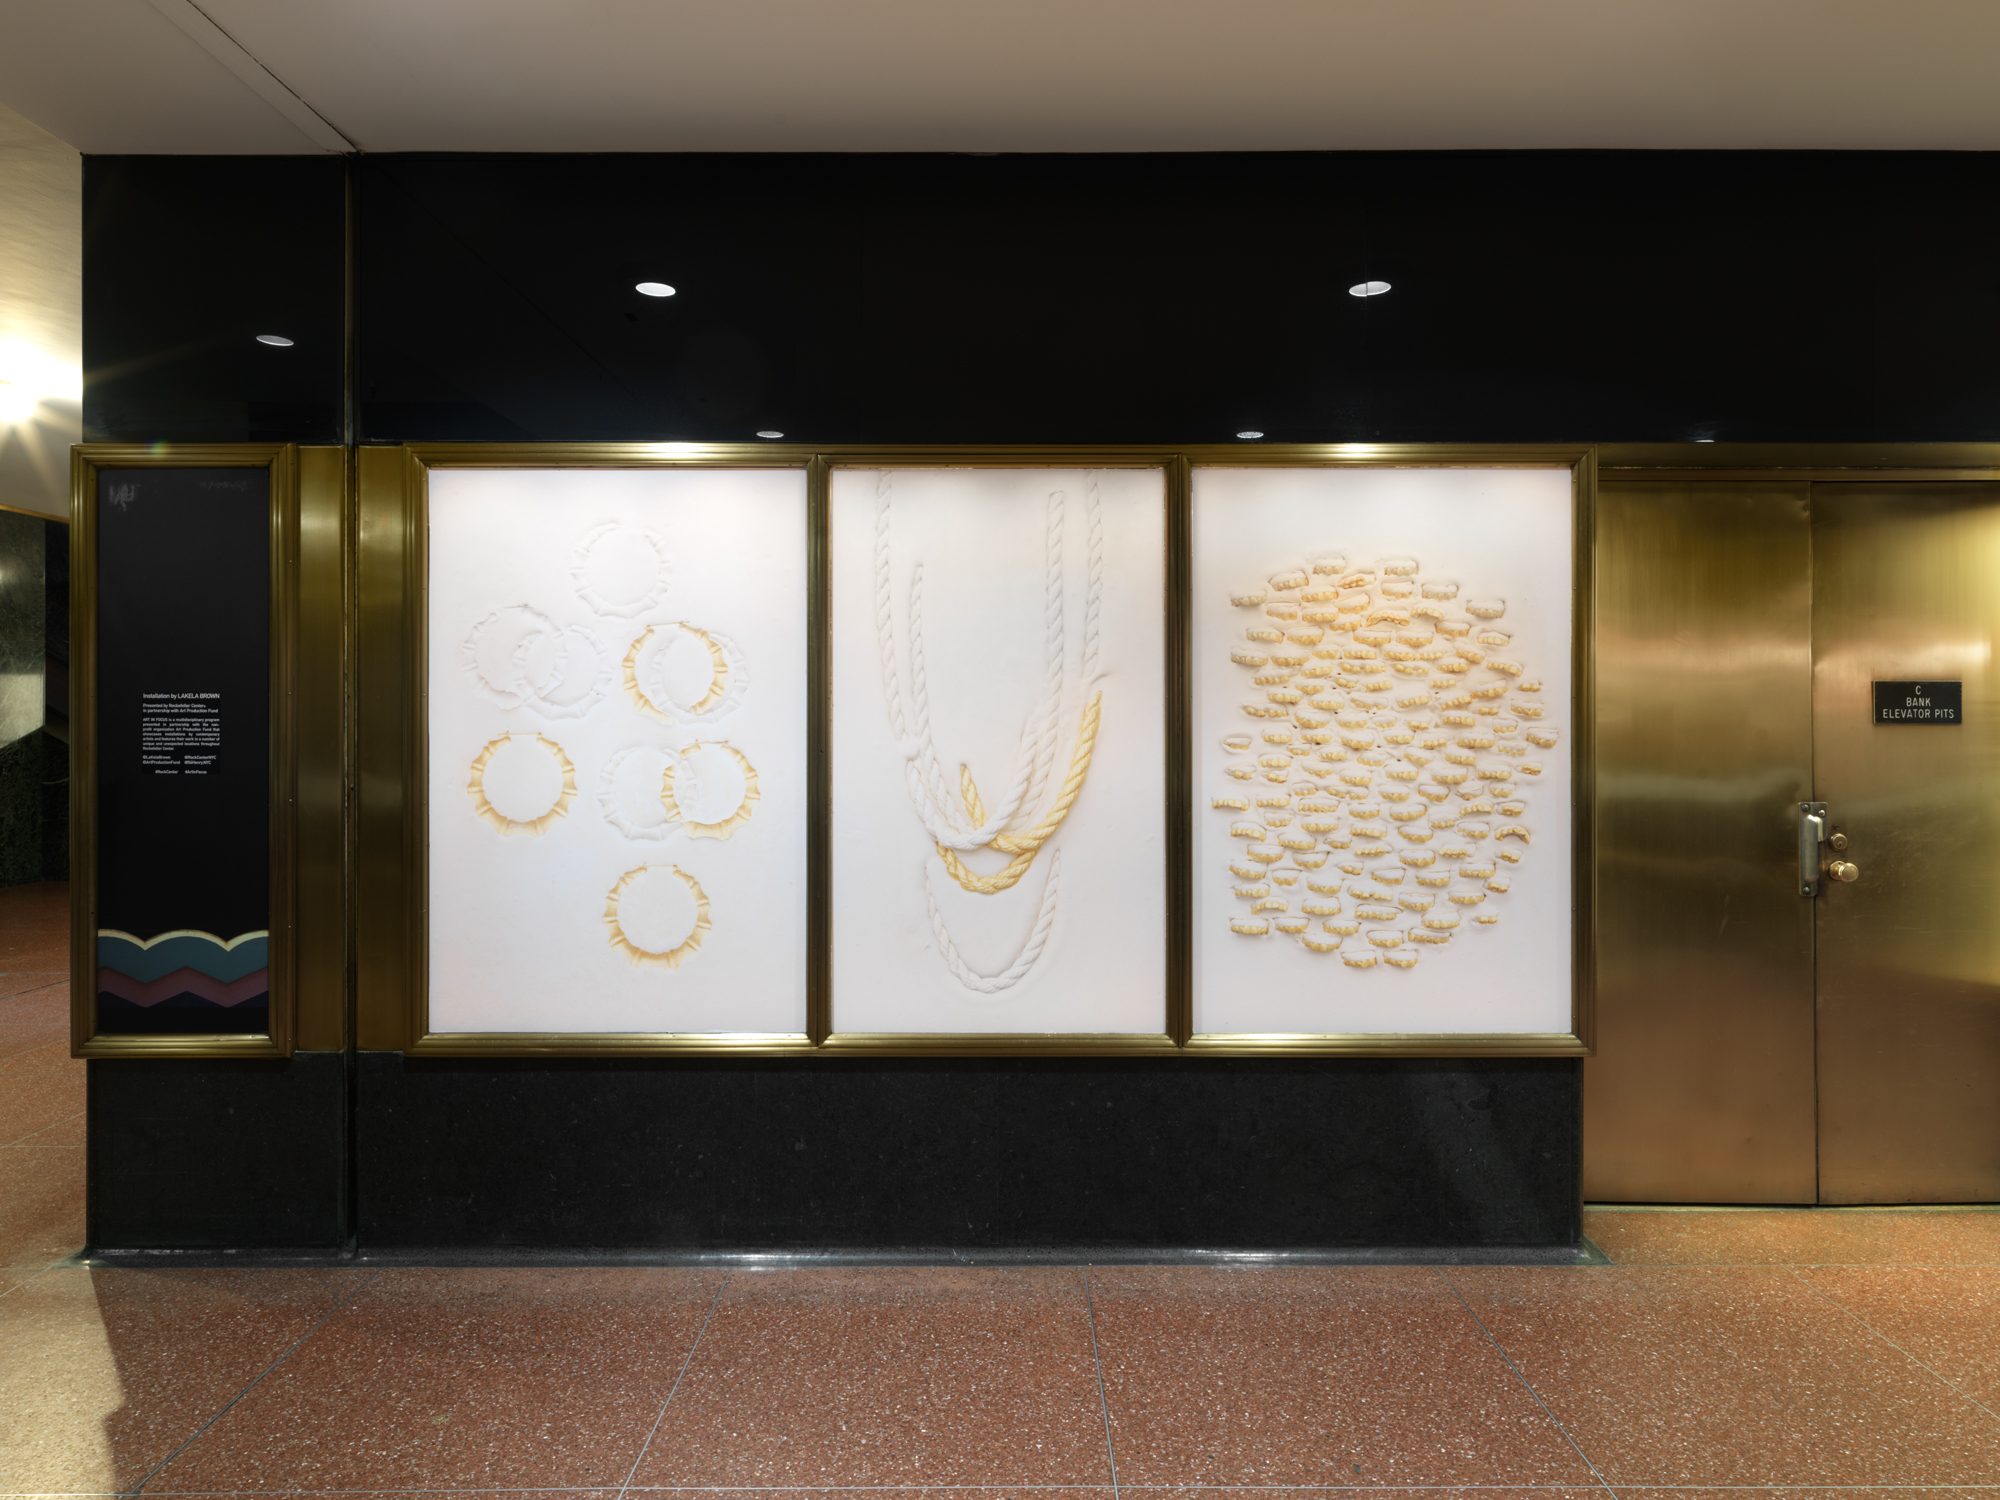 Lightbox display in concourse under 45 Rockefeller Plaza. Photo by Dan Bradica, courtesy of Art Production Fund.